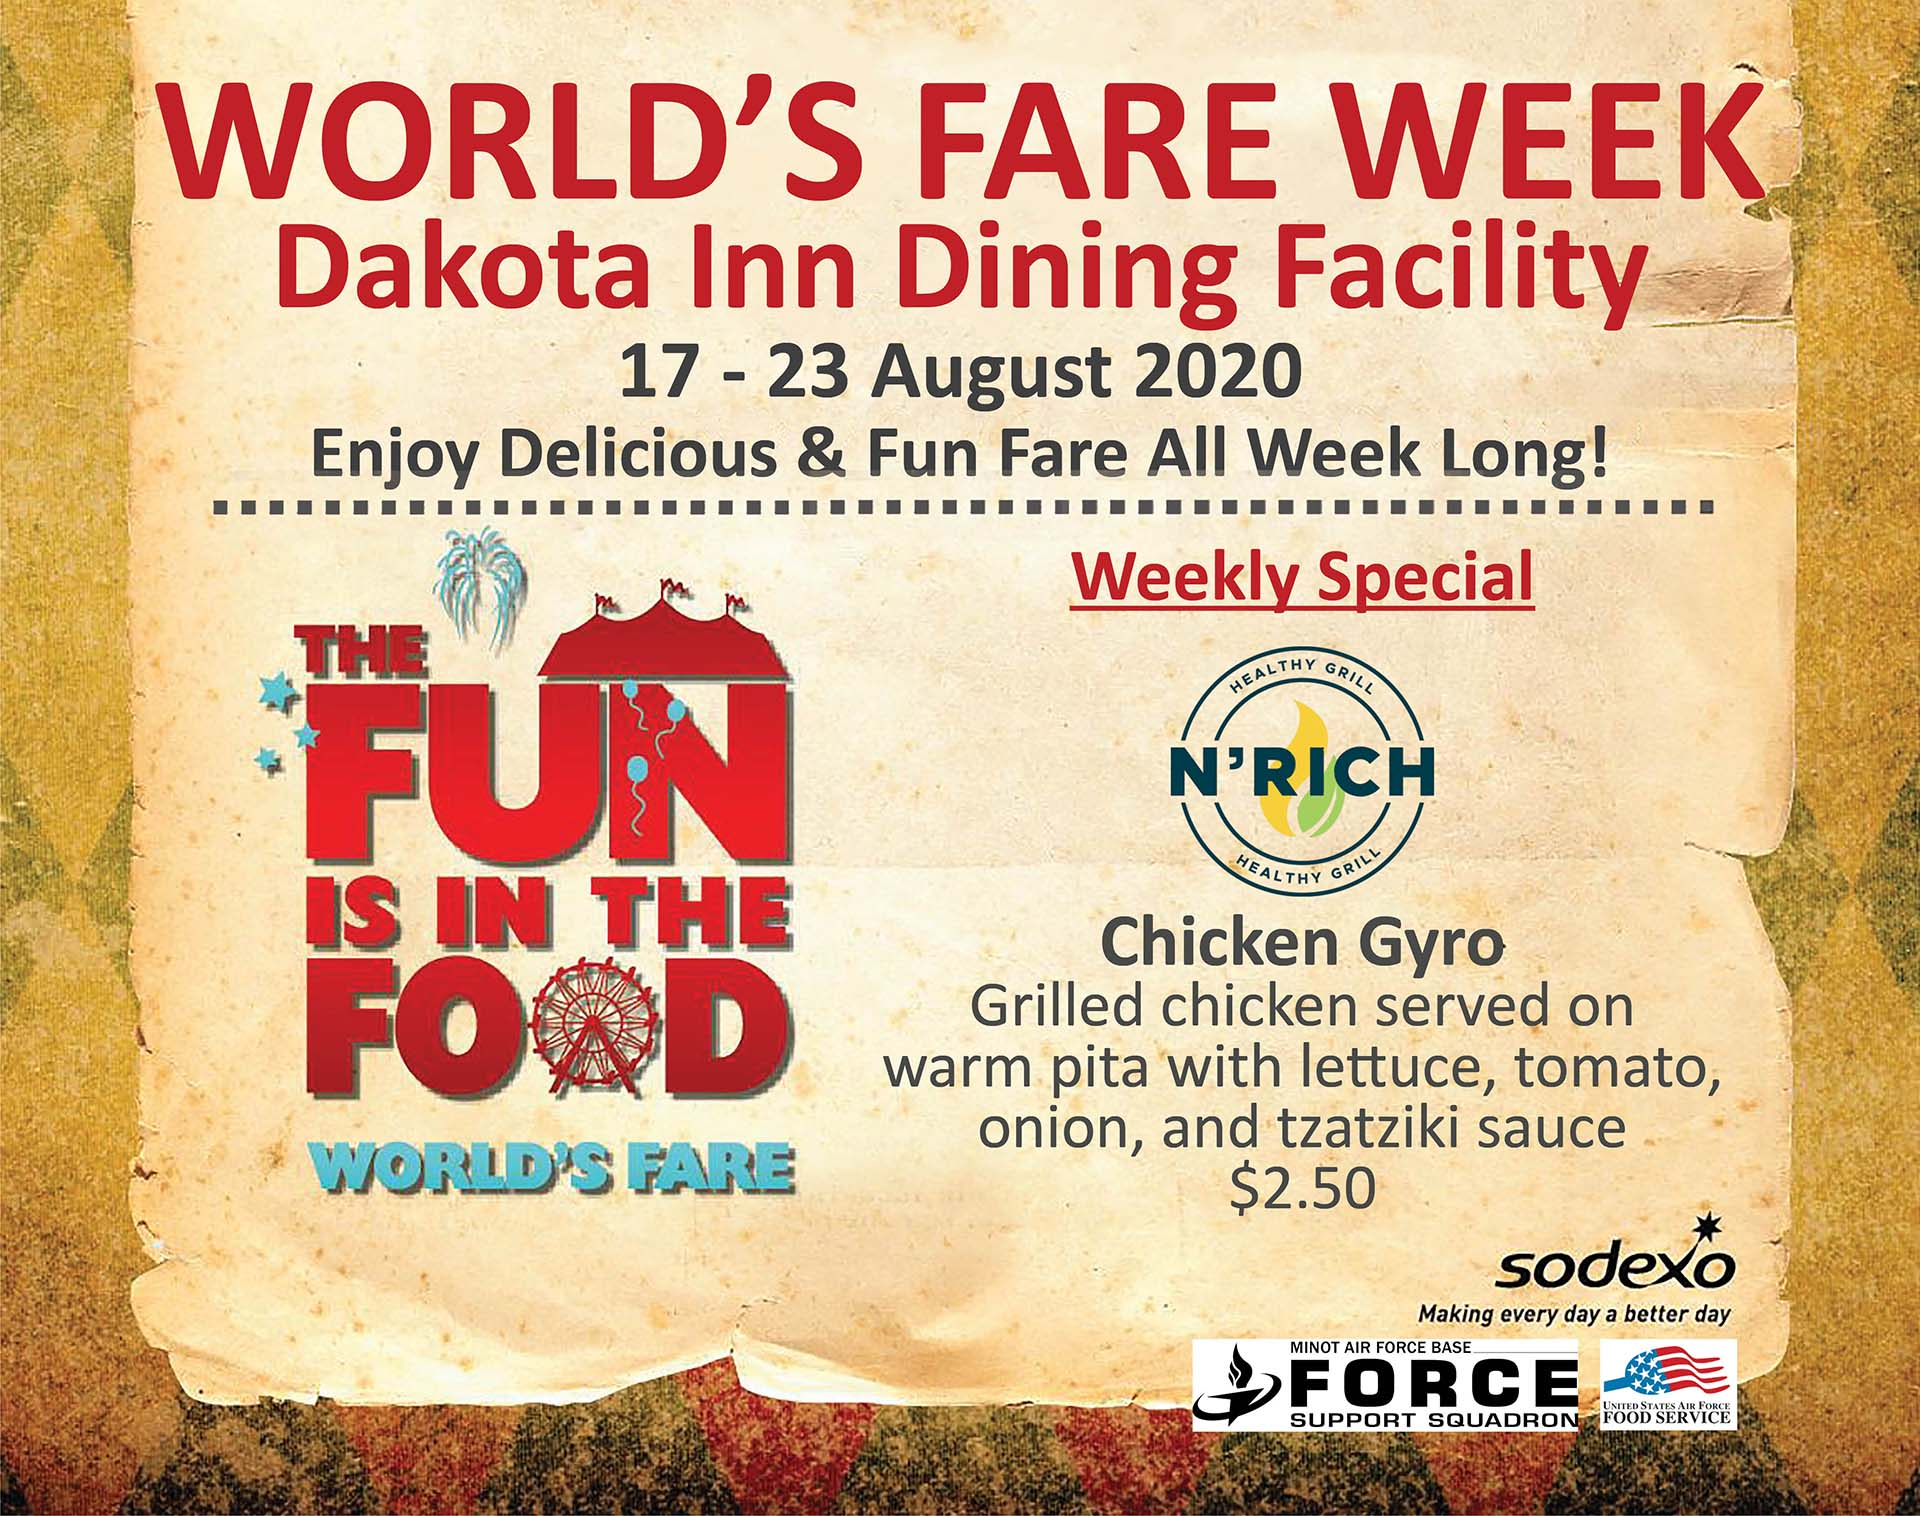 08.17-23 Worlds Fare - Weekly Special Chicken Gyro